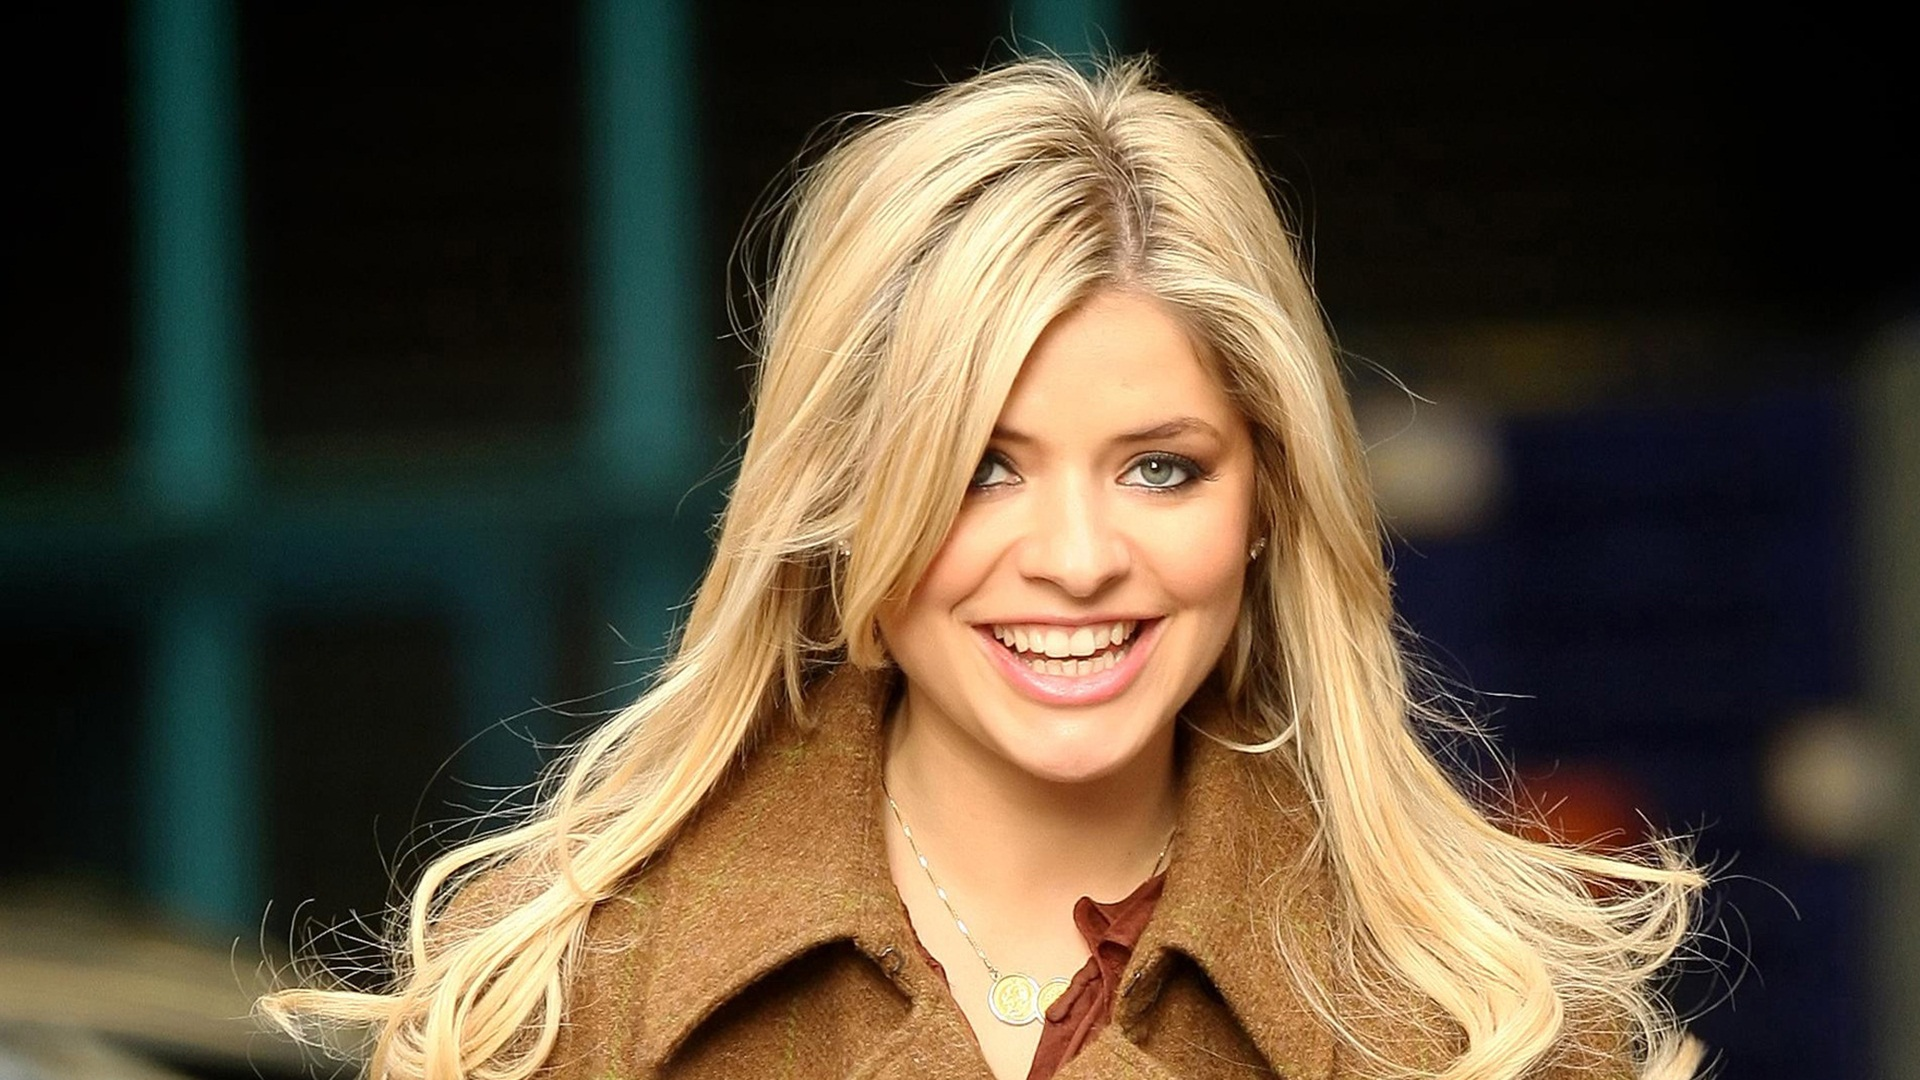 Smiling-Holly-Willoughby-HD-Wallpaper